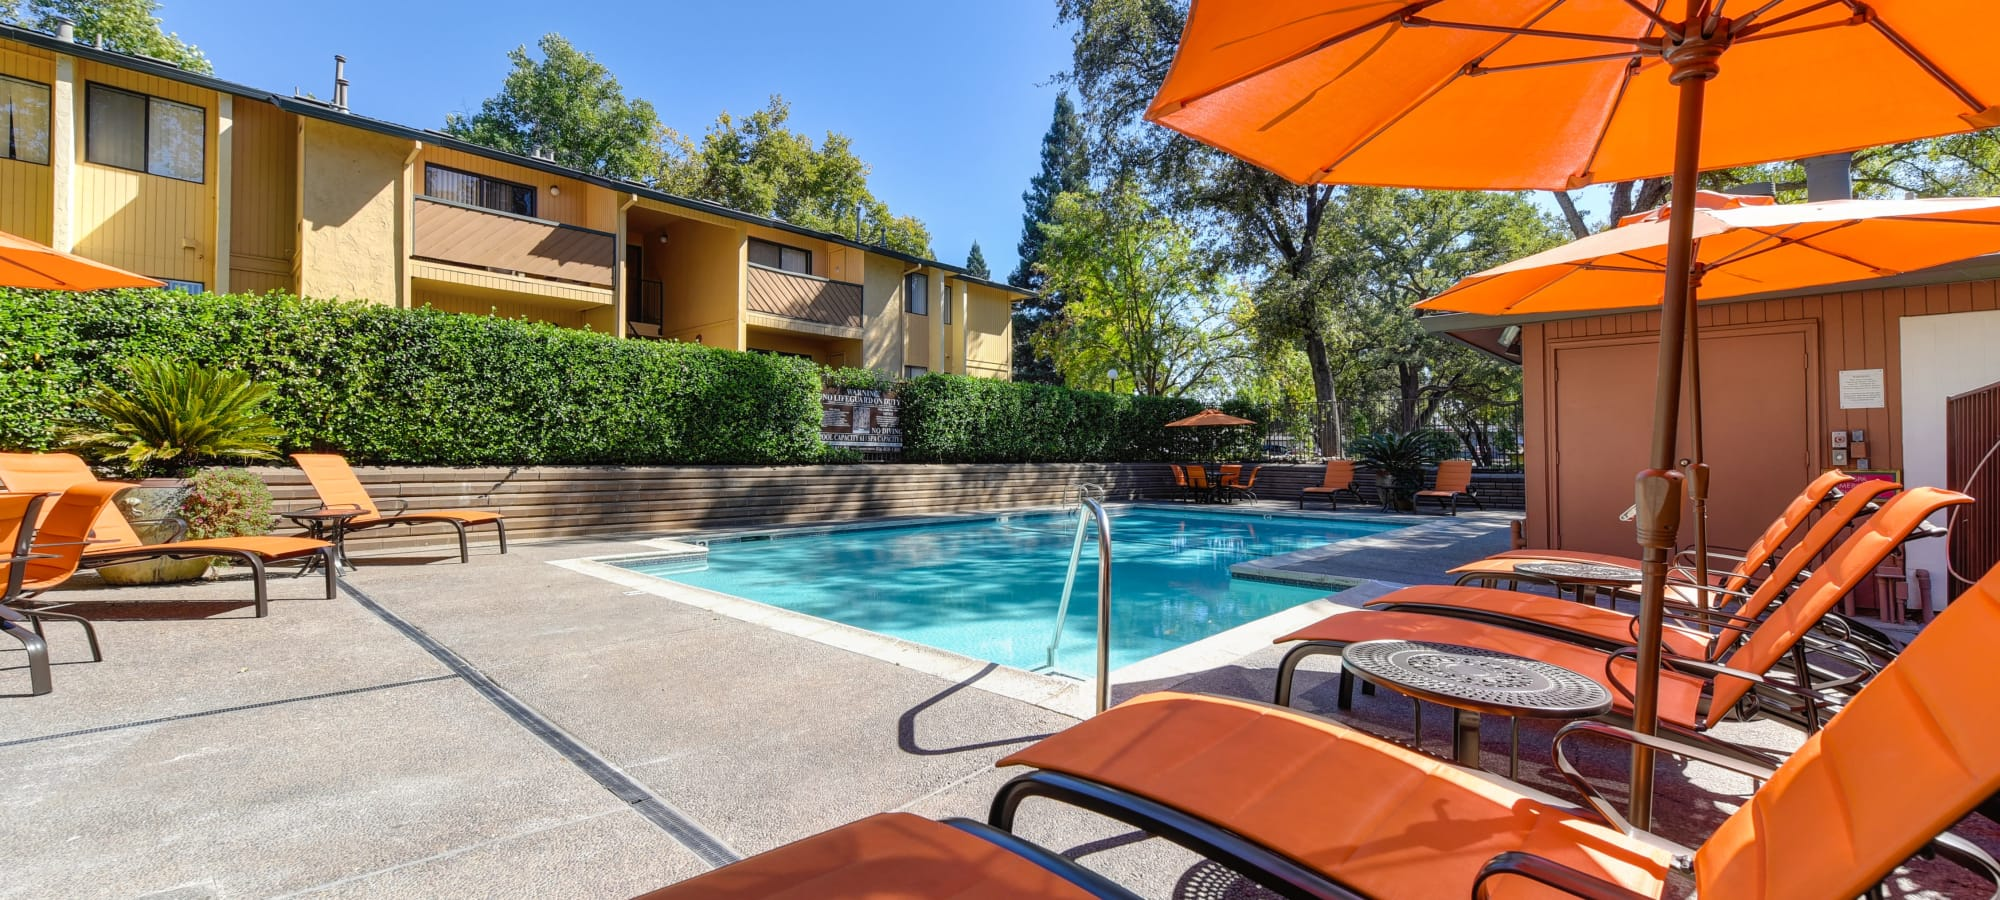 A place you can call home at Folsom Gateway in Orangevale, California